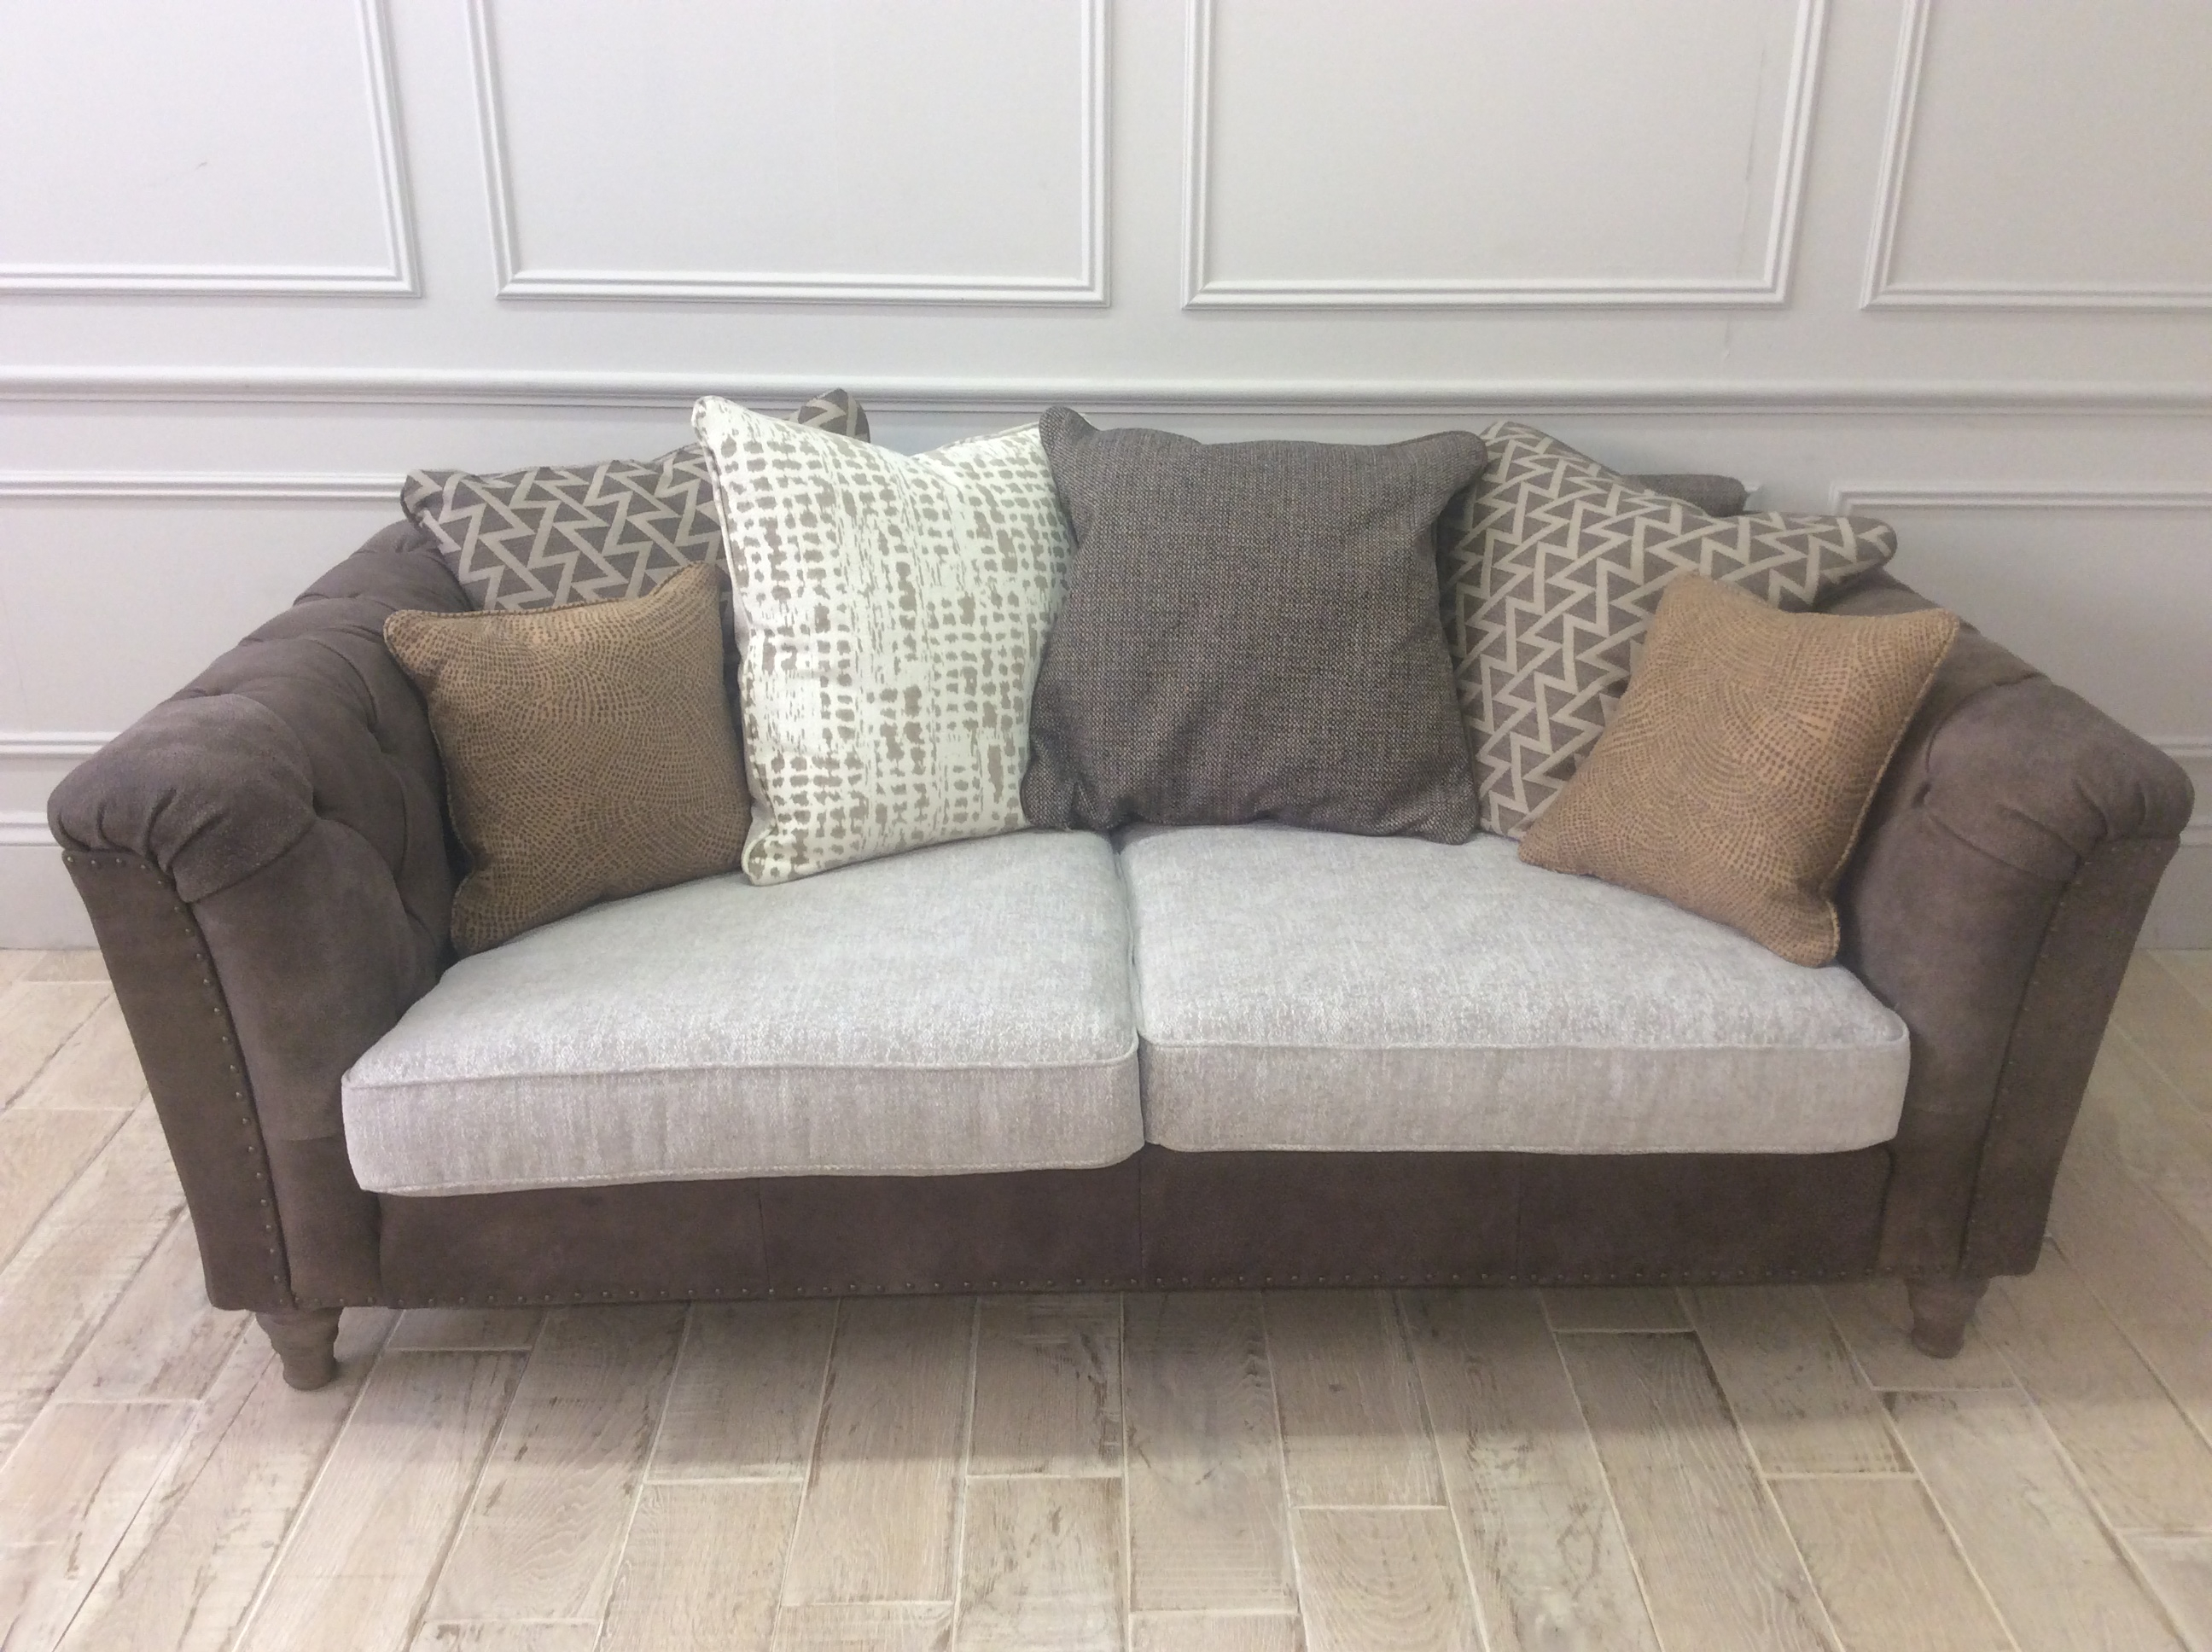 Product photograph showing Dorset Medium Sofa - Leather Fabric Mix - Buffed Putty